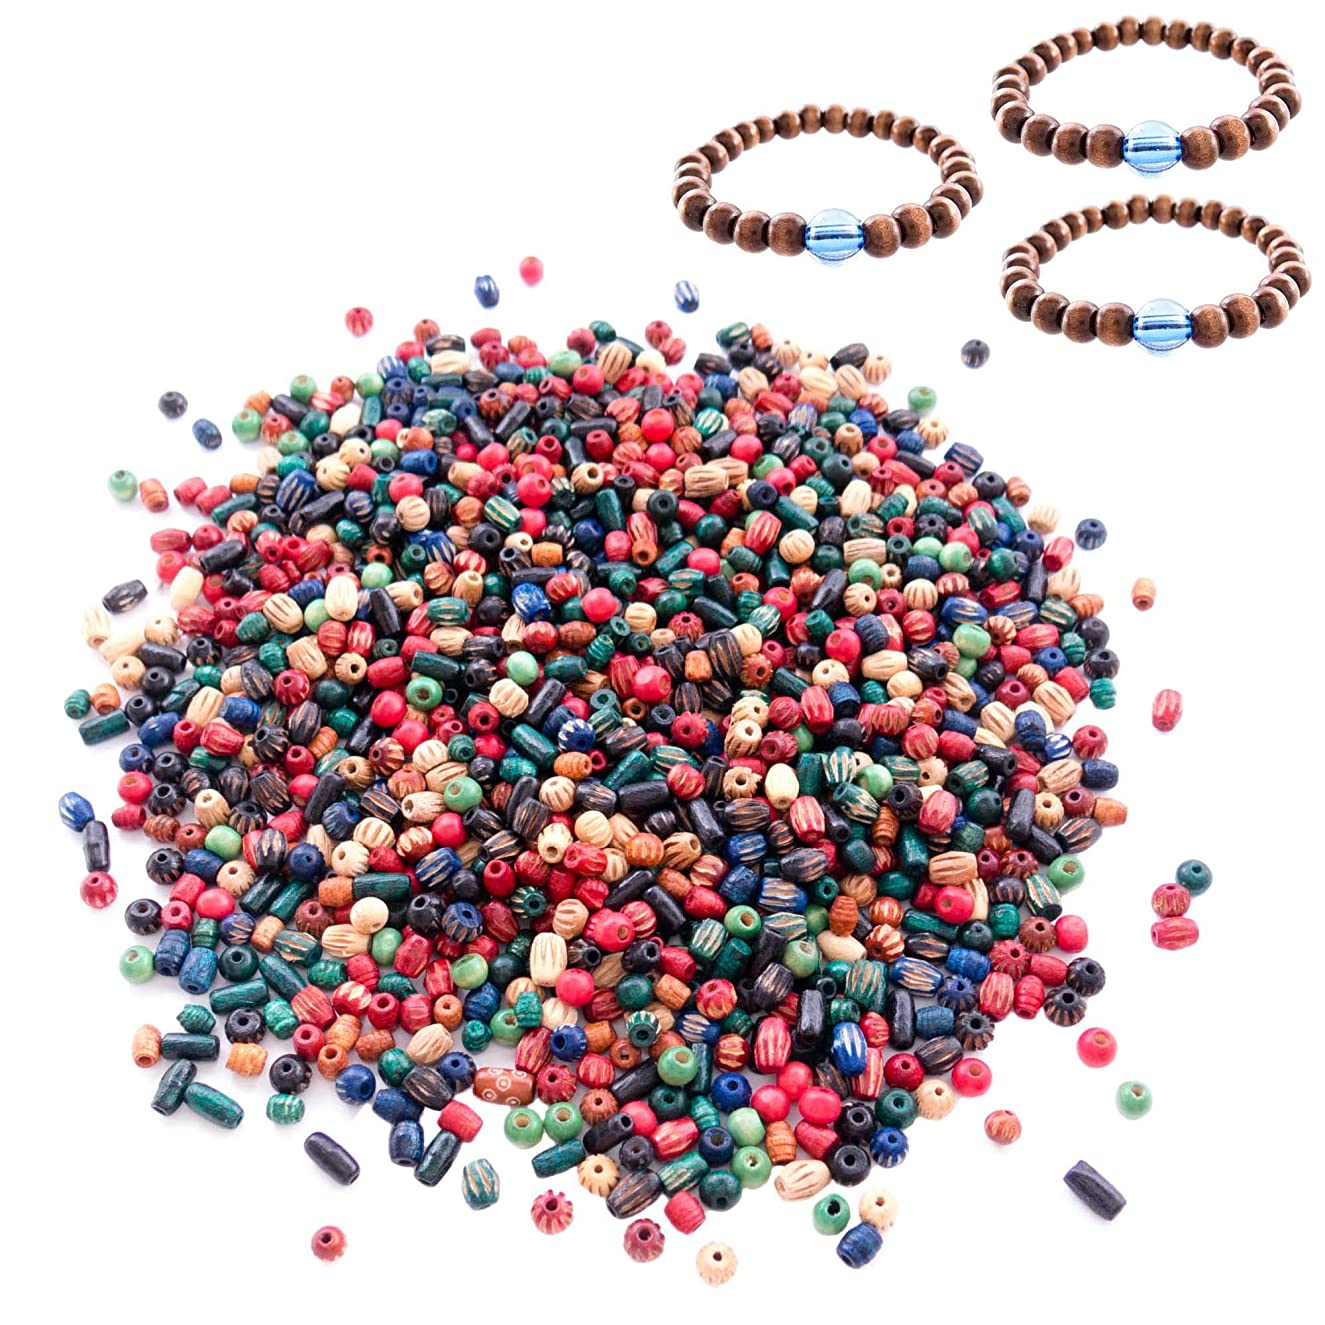 Over 1800 Pieces Wood Beads for Jewelry Making with 3 Free Sample Bracelets - Assorted Natural Wooden Bead Styles - Great for African, Native American Designs, Macramé Bracelets, Necklaces, Braids dvcwydmyqtfgex